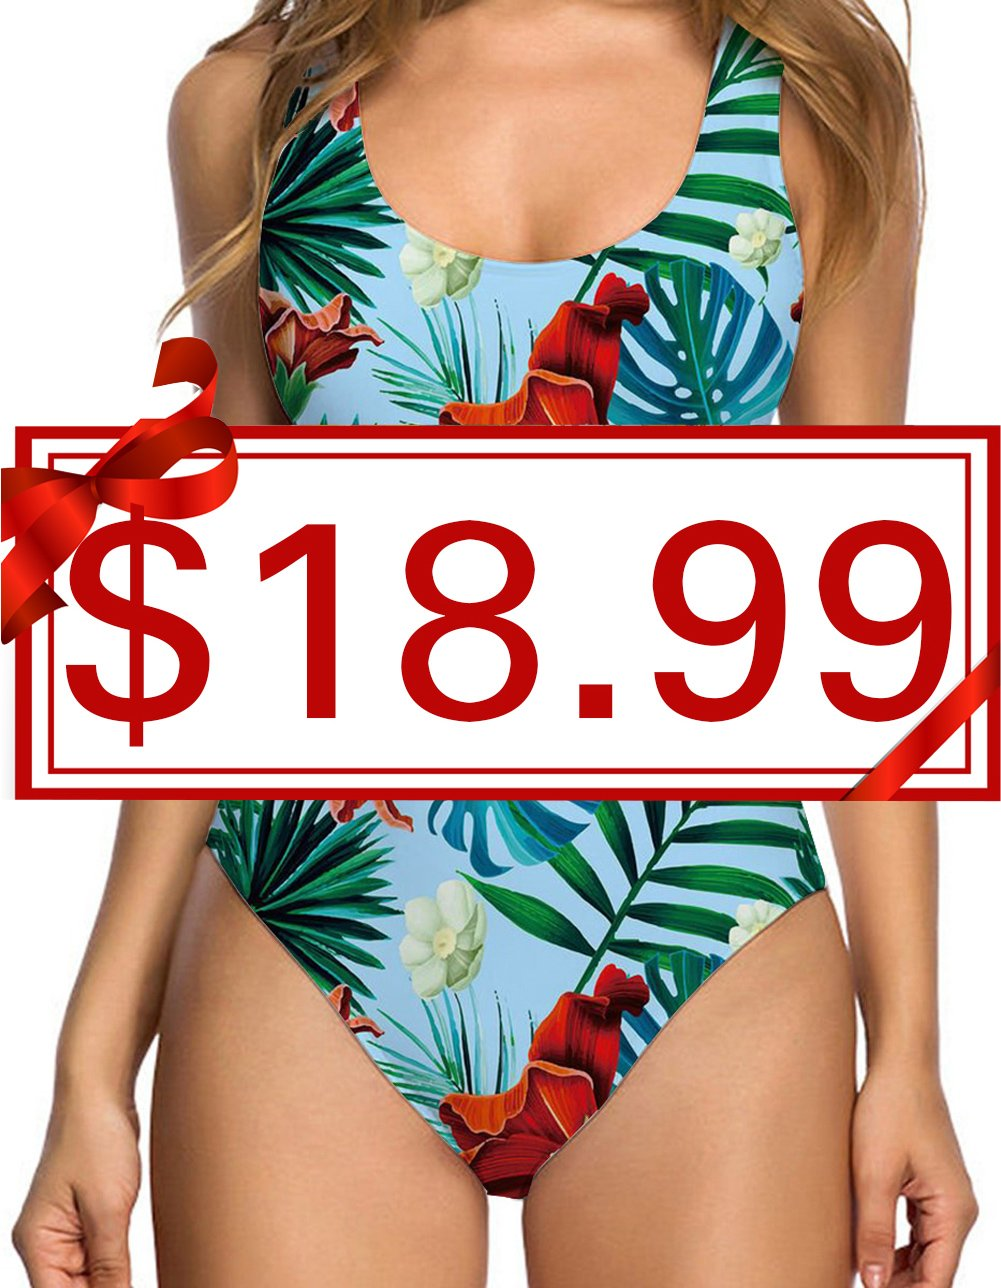 TUONROAD Floral Prints Sexy One Piece Swimsuit Funny Pattern Inspired Competition Exercise Swimwear Monokini Bathing Suit with High Cut and Low Back for Women,Large,Blue Leaves-1